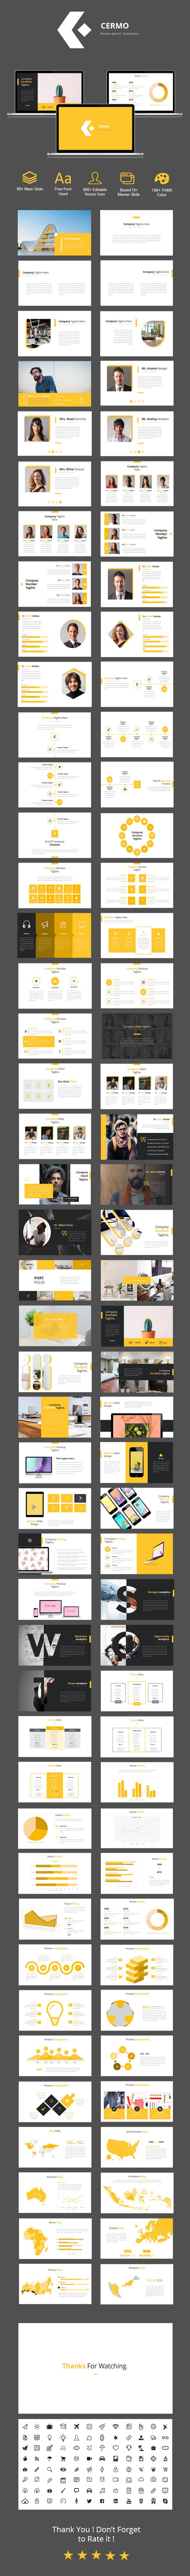 206 best free powerpoint templates images on pinterest power point